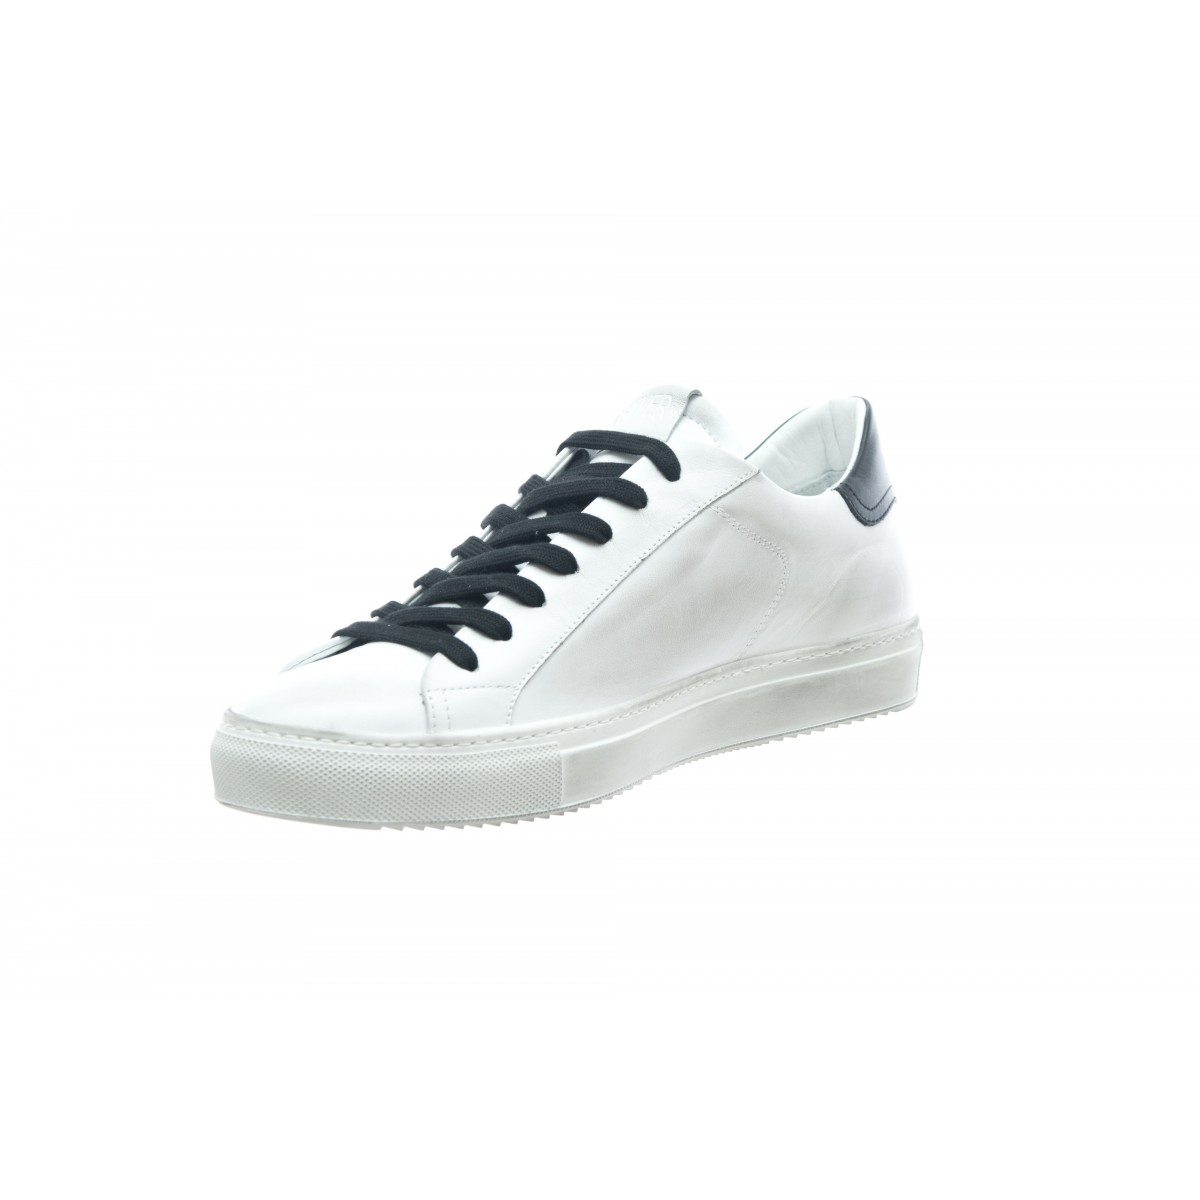 Scarpa - Sneakers tennis a pelle made in italy